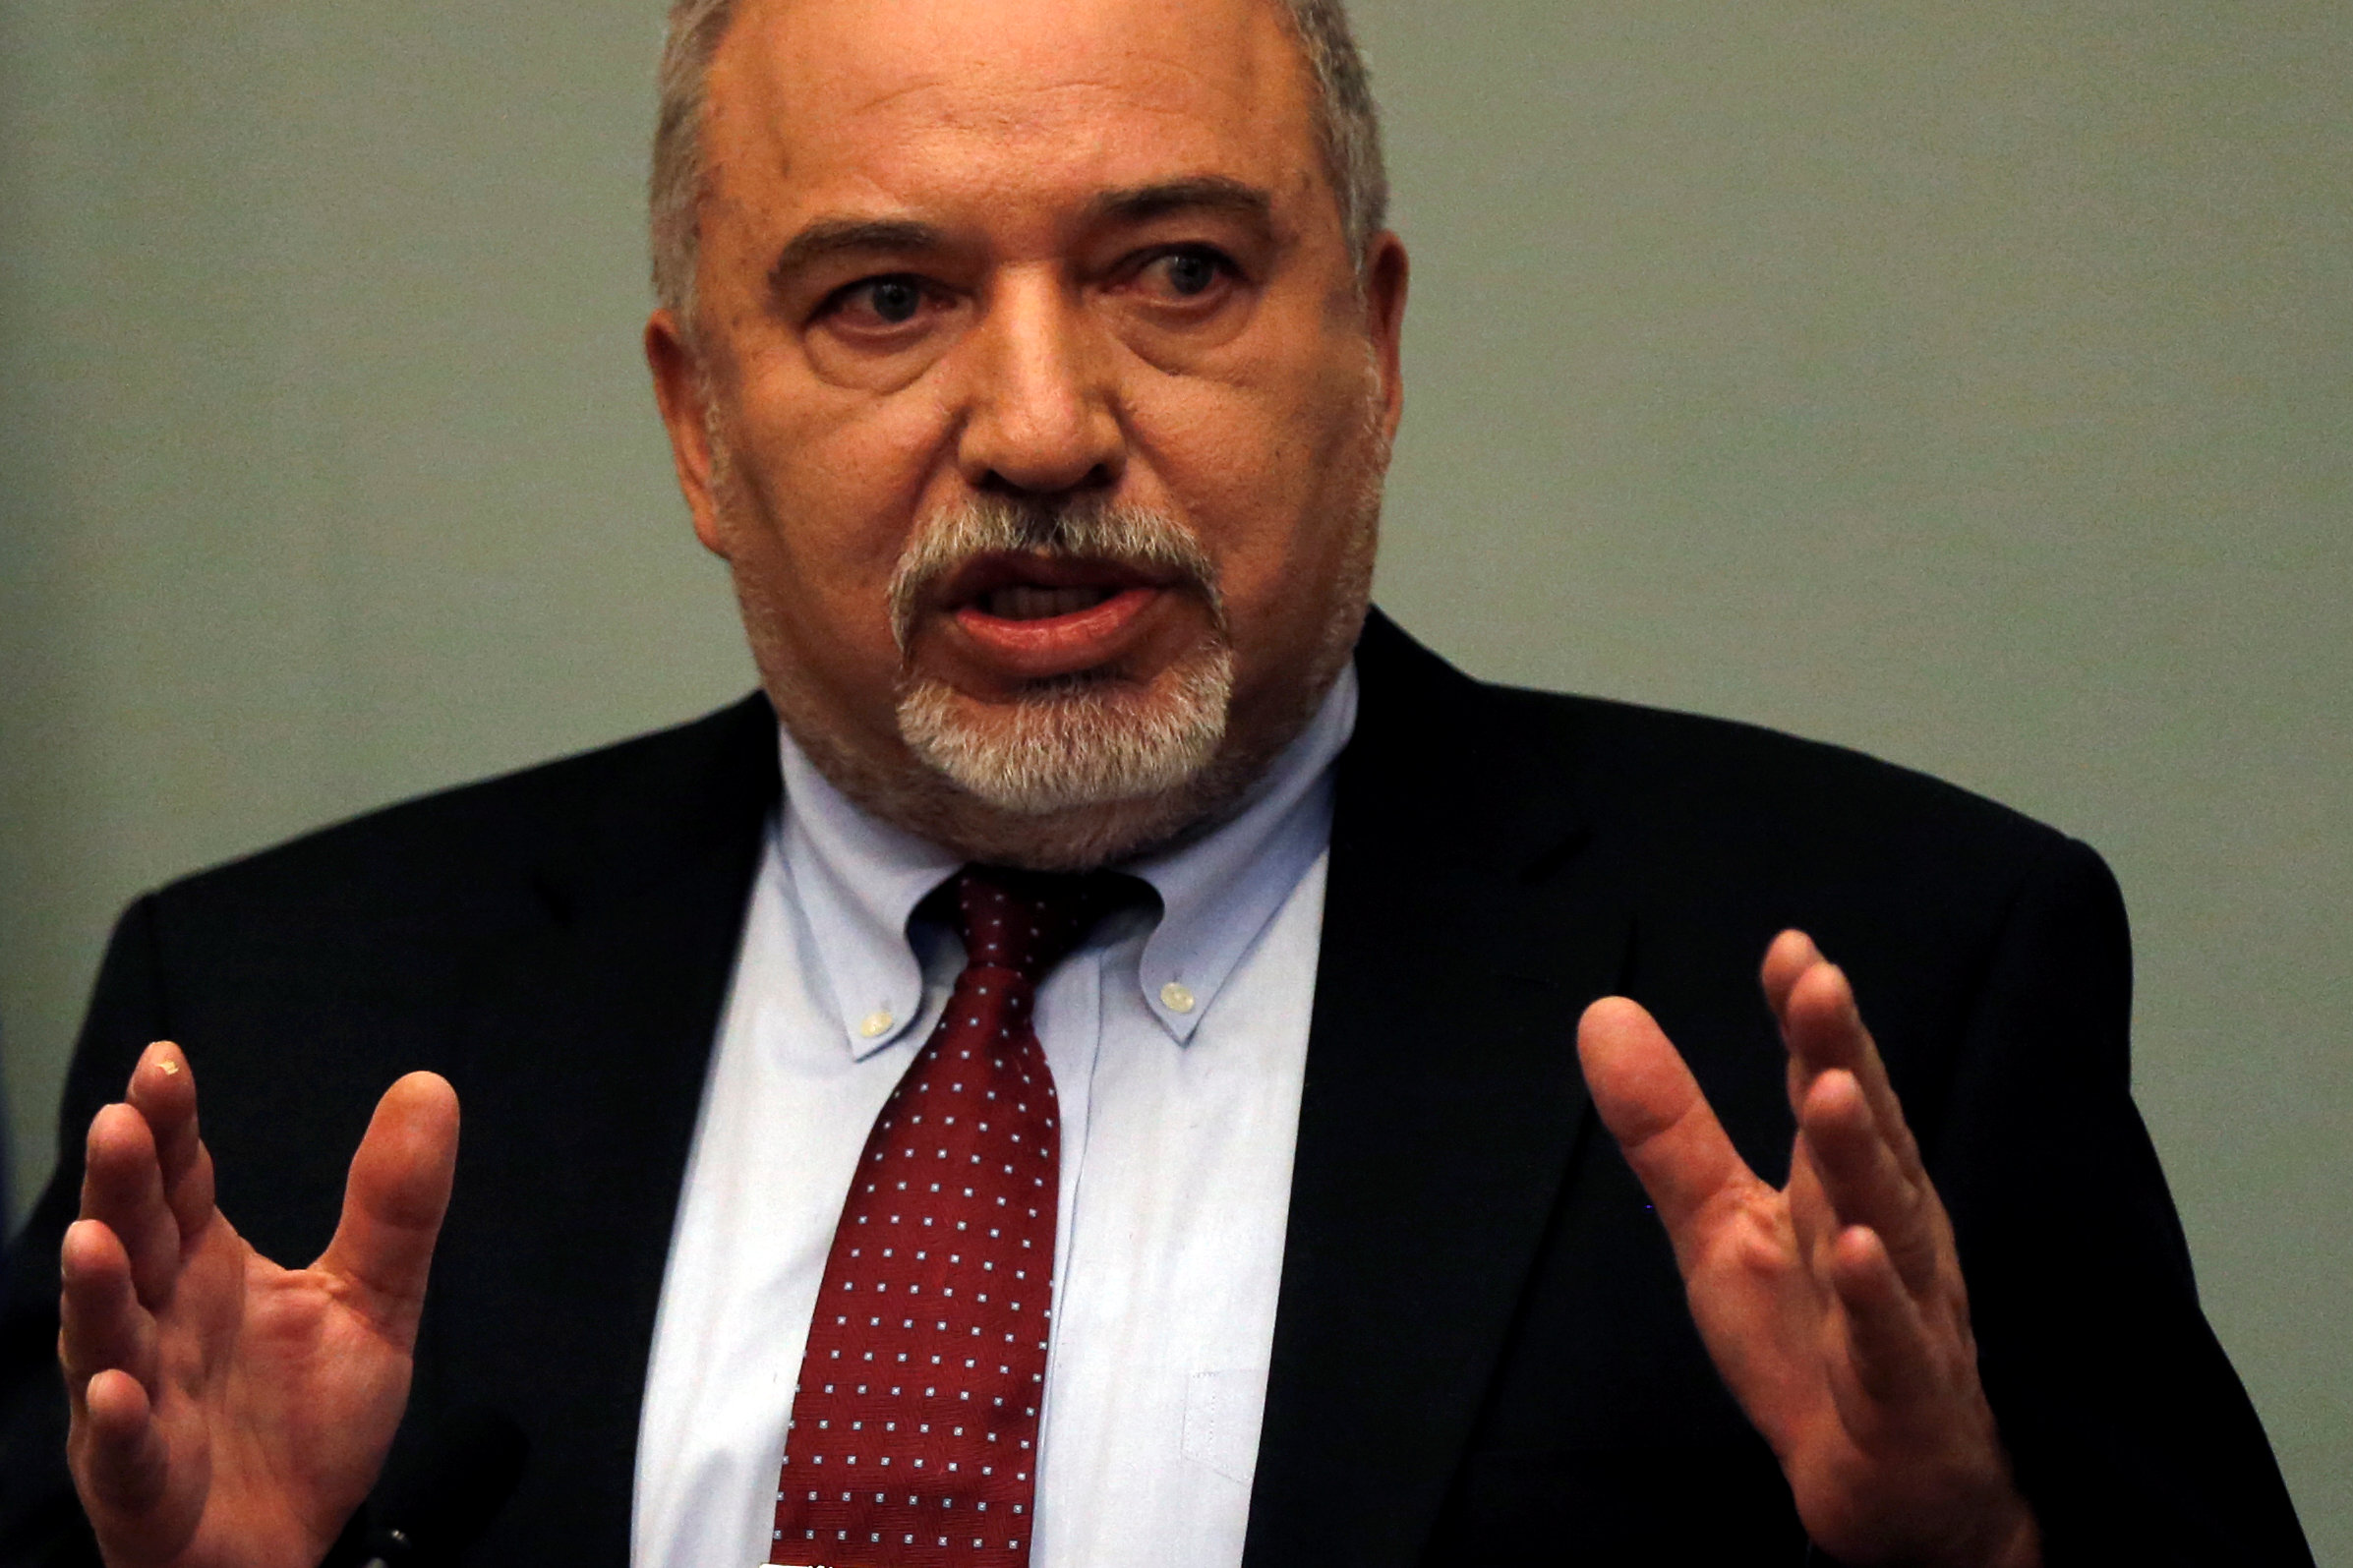 Israel's hawkish defense minister resigns from the government over Hamas truce